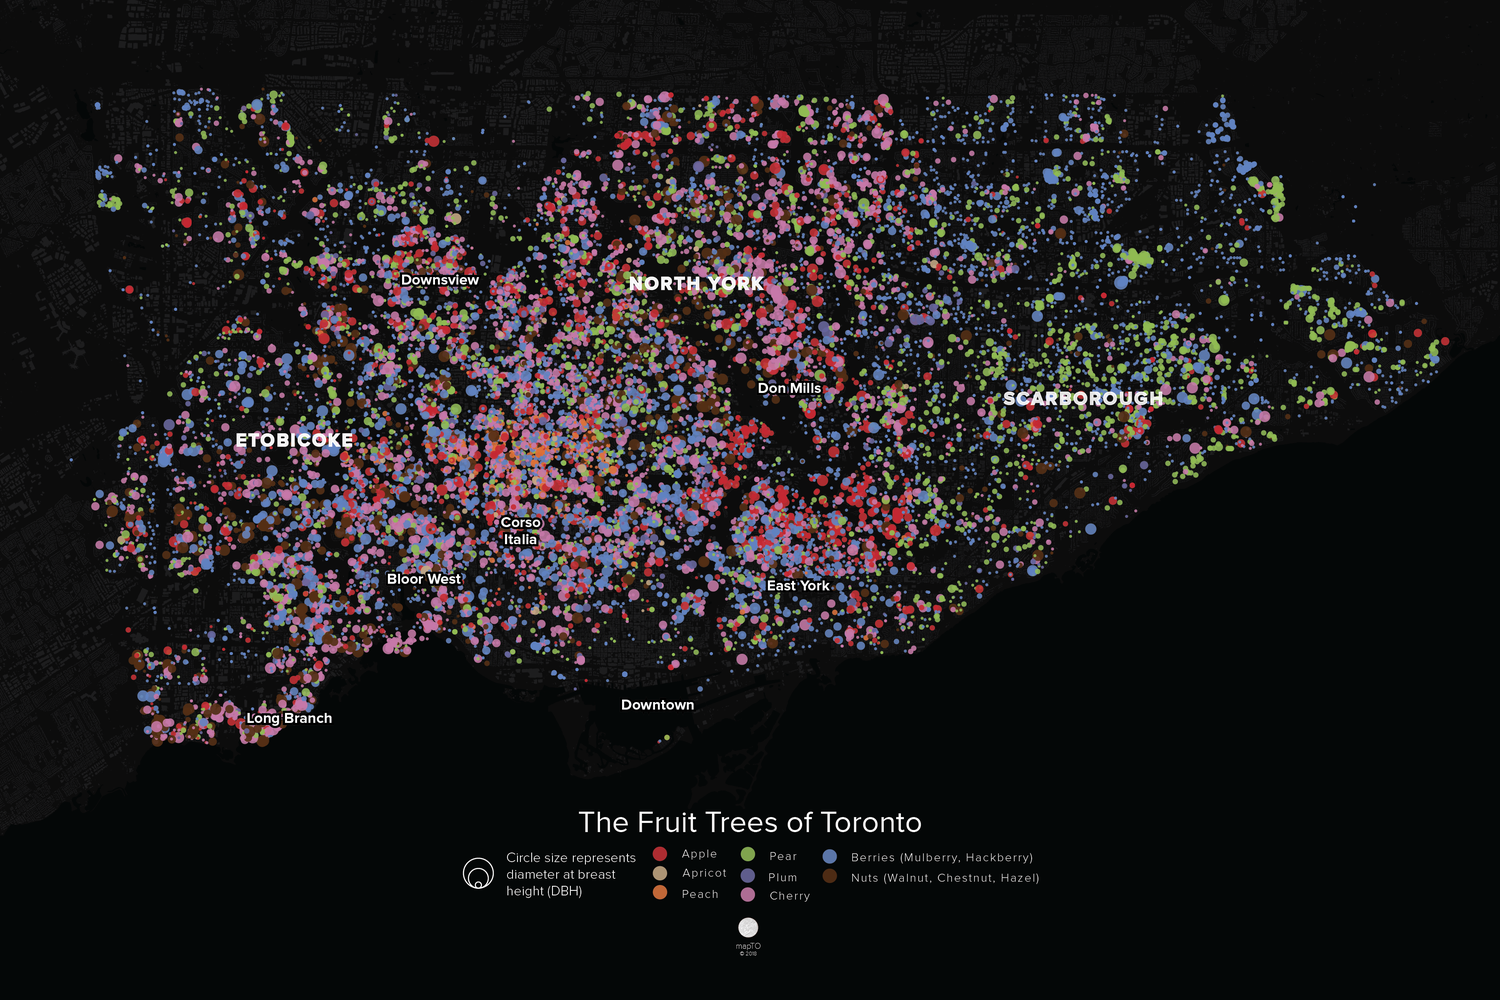 Image of The Fruit Trees of Toronto